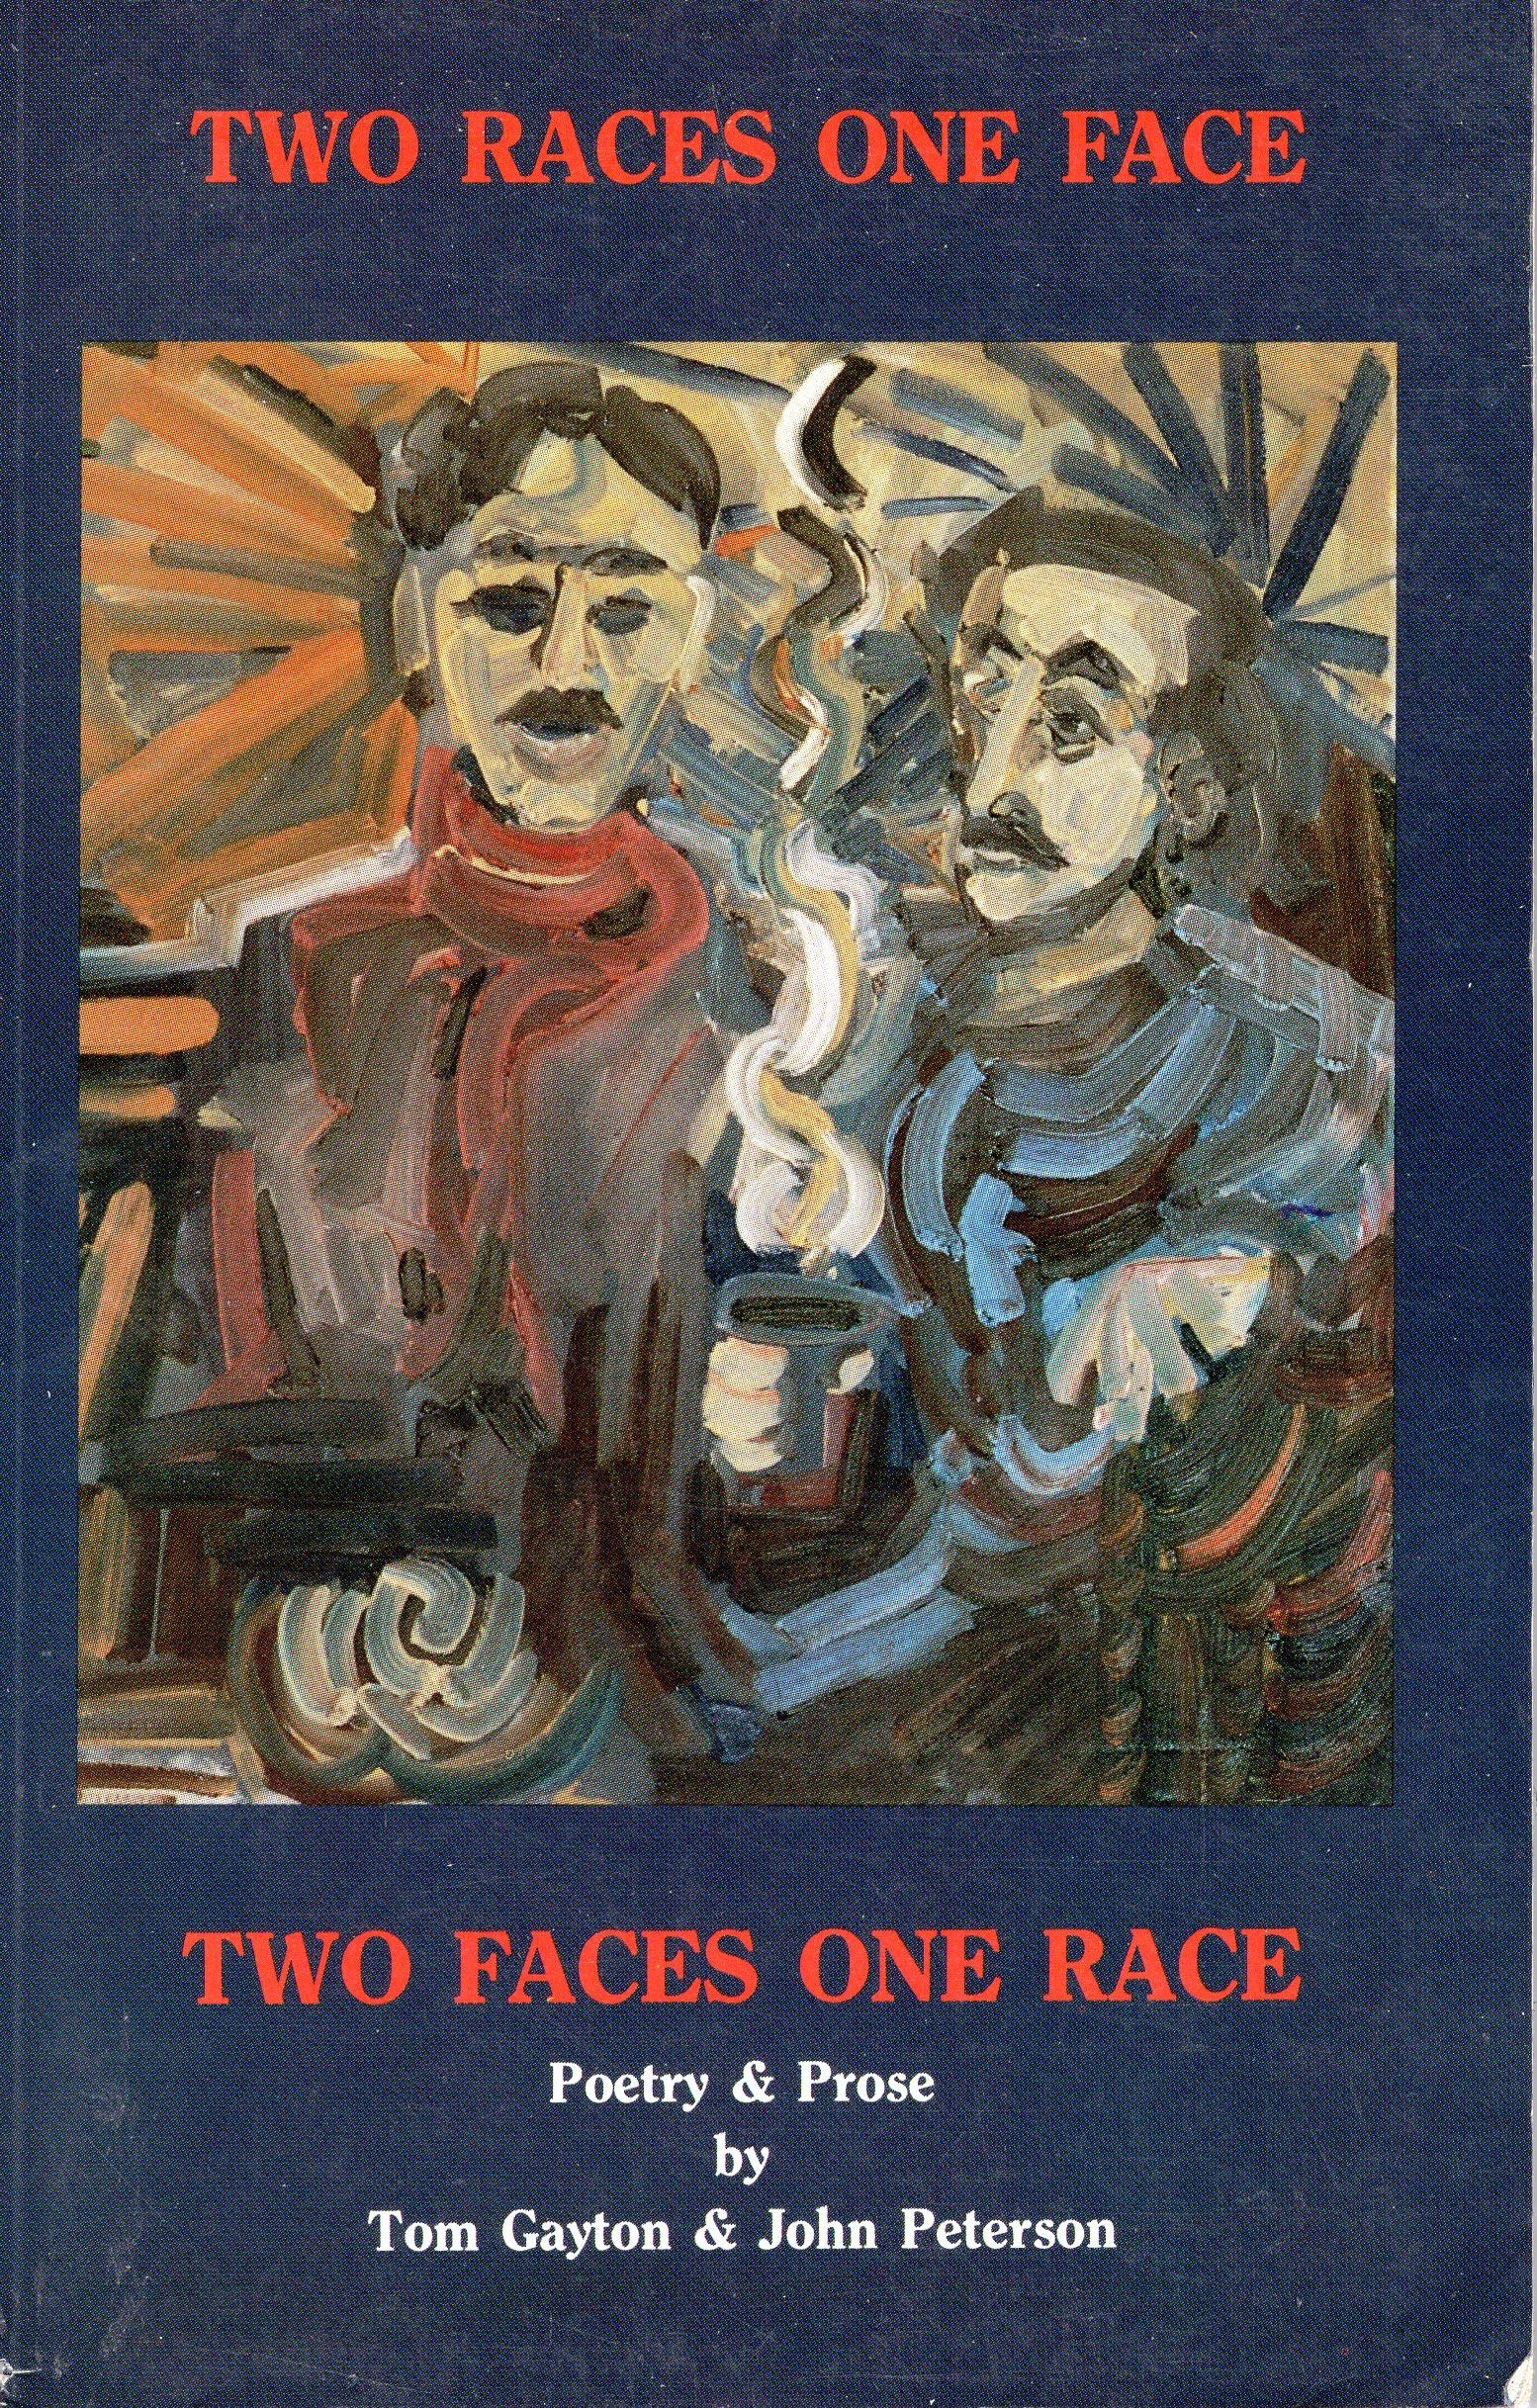 Two races one face, two faces one race: Poetry and prose, Gayton, Thomas L